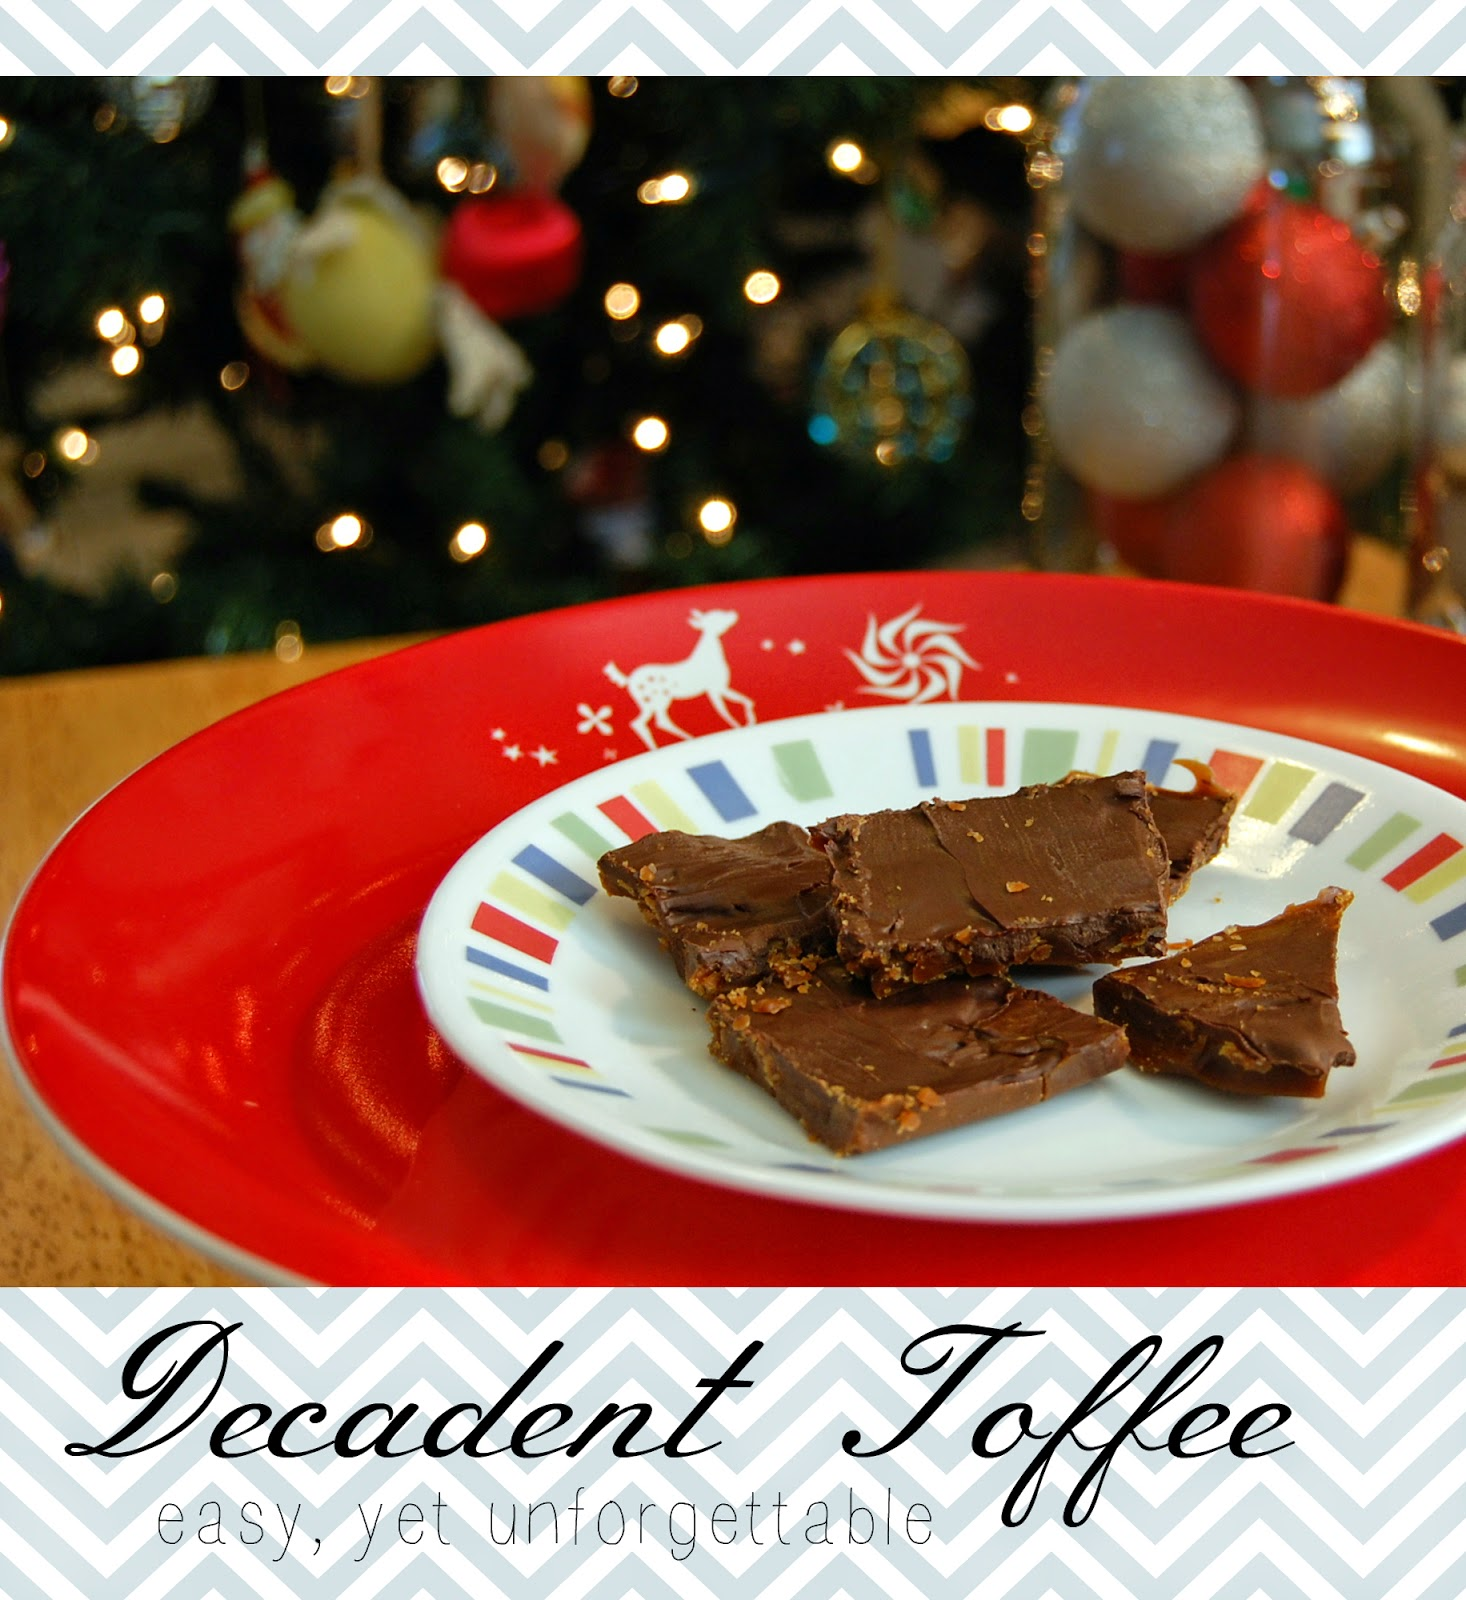 Super easy and delicious five ingredient Decadent Toffee recipe